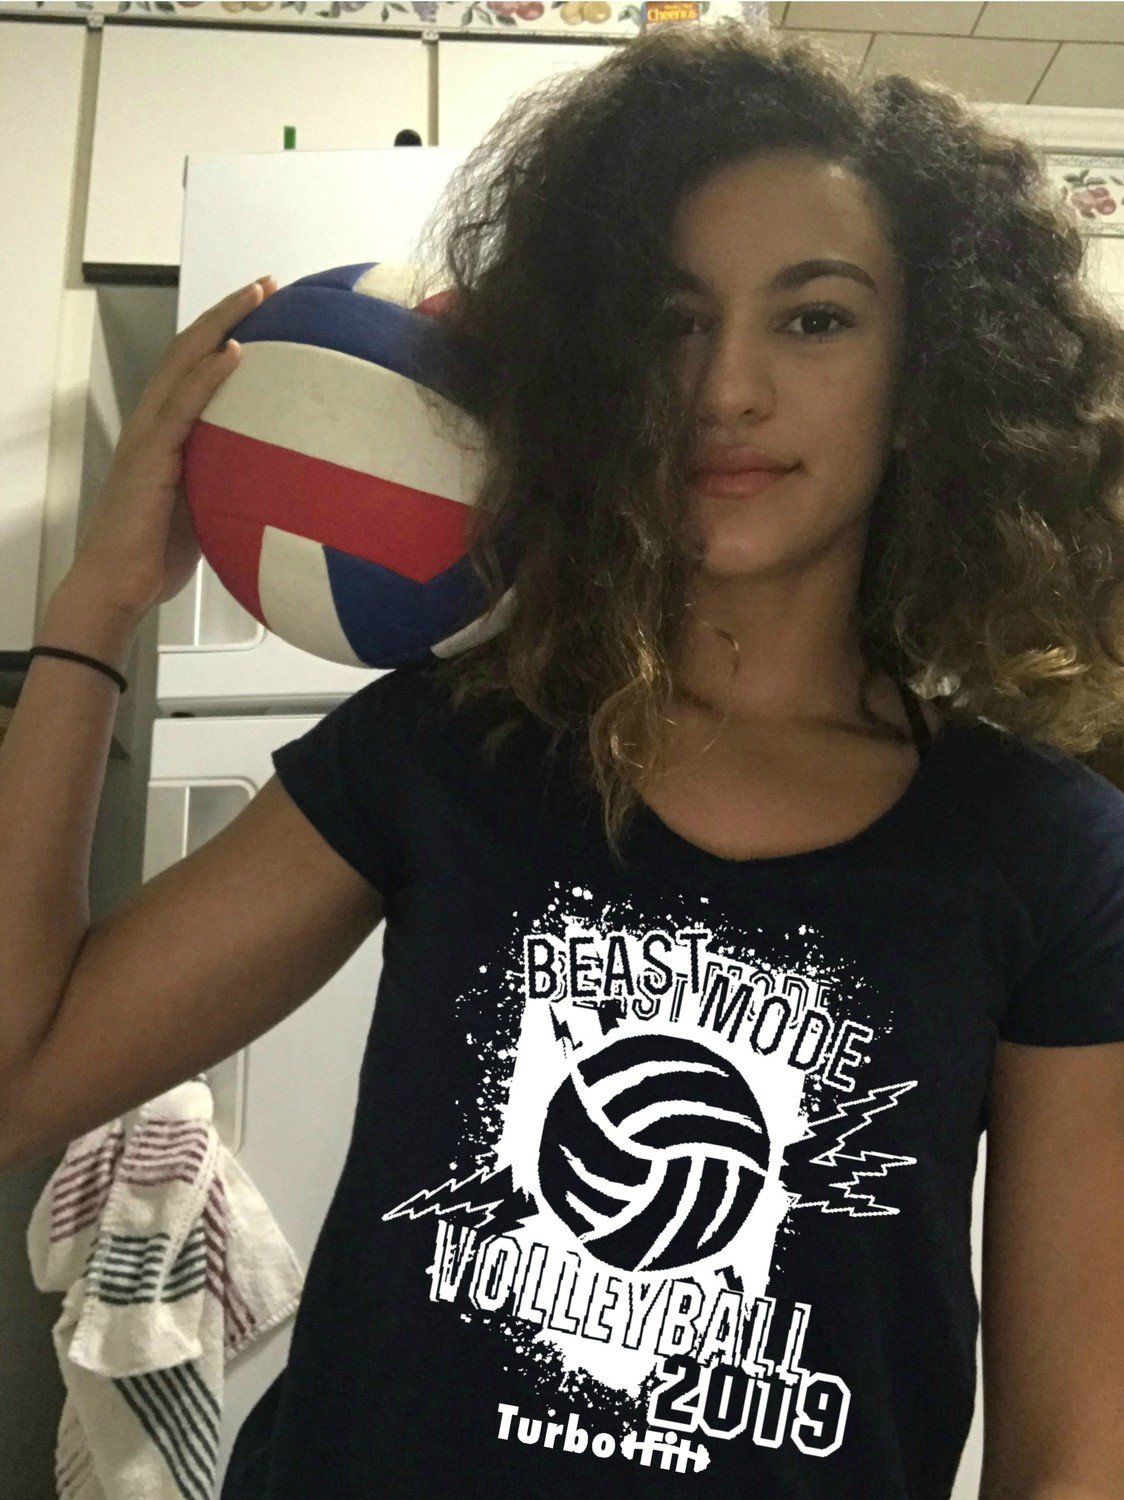 Turbo Fit Beast Mode Volleyball 2019